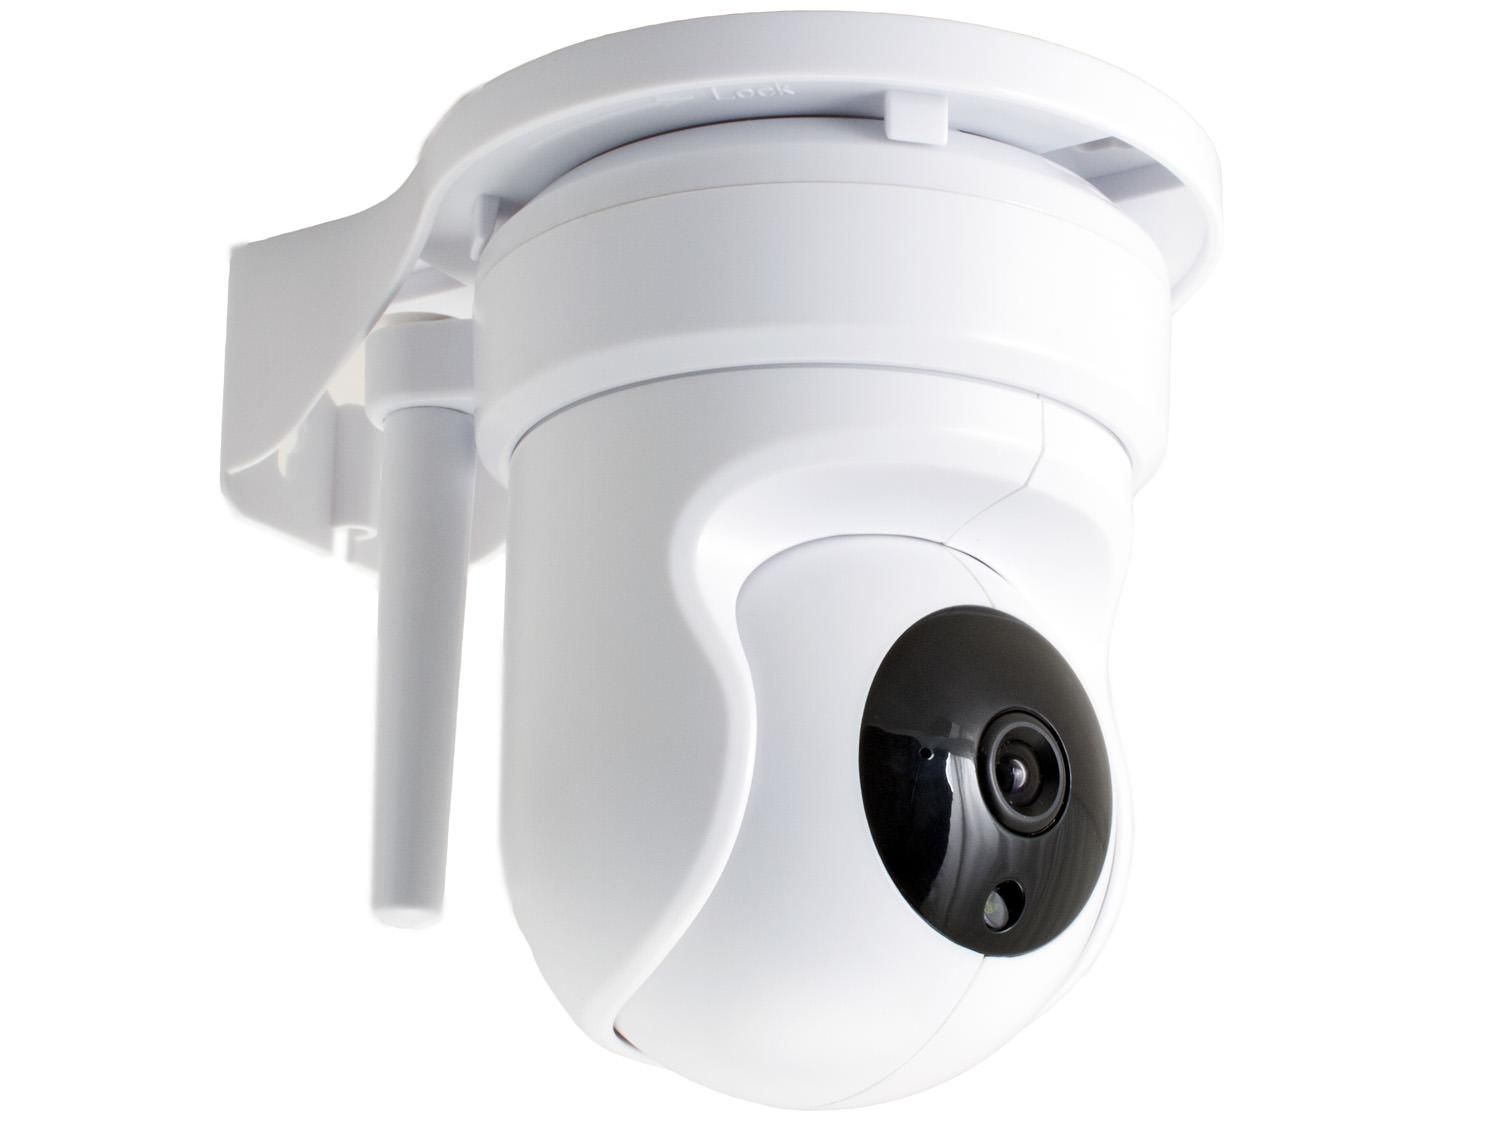 Best Security Cameras Installation Company Best Security Cameras Security Camera Installation Cctv Camera For Home